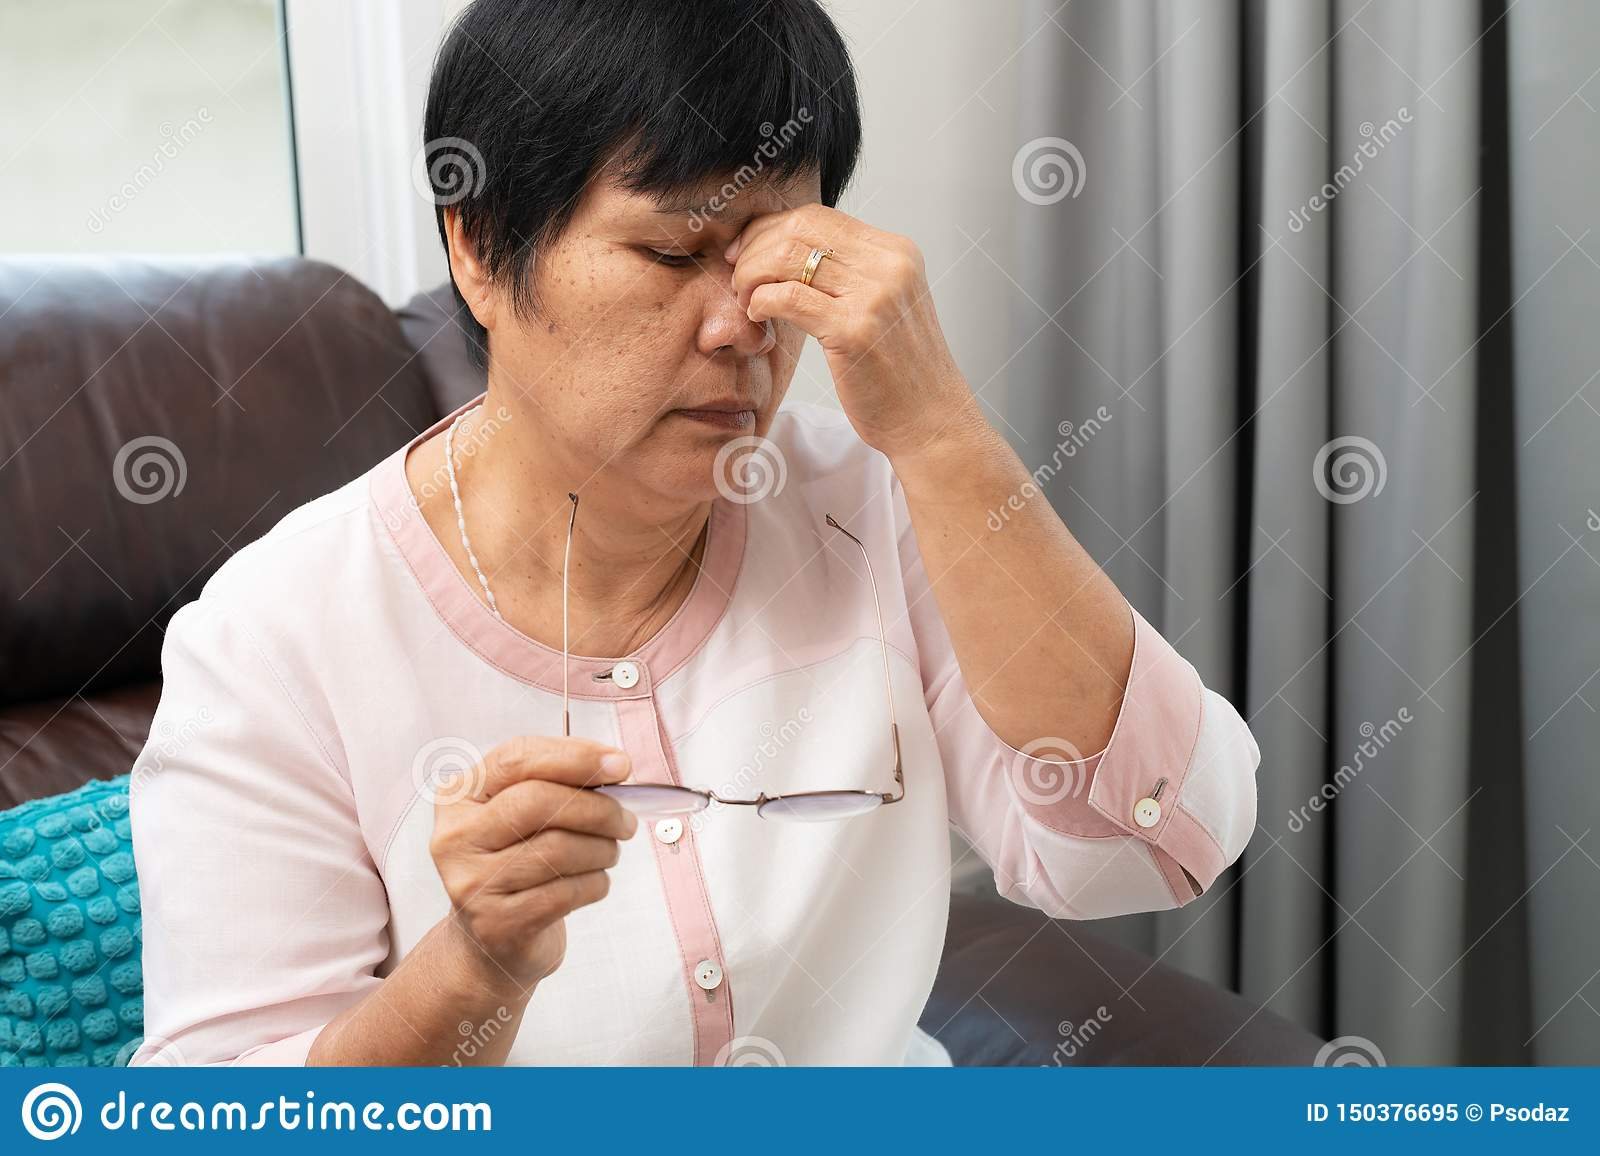 Tired old woman removing eyeglasses, massaging eyes after reading paper book. feeling discomfort because of long wearing glasses,